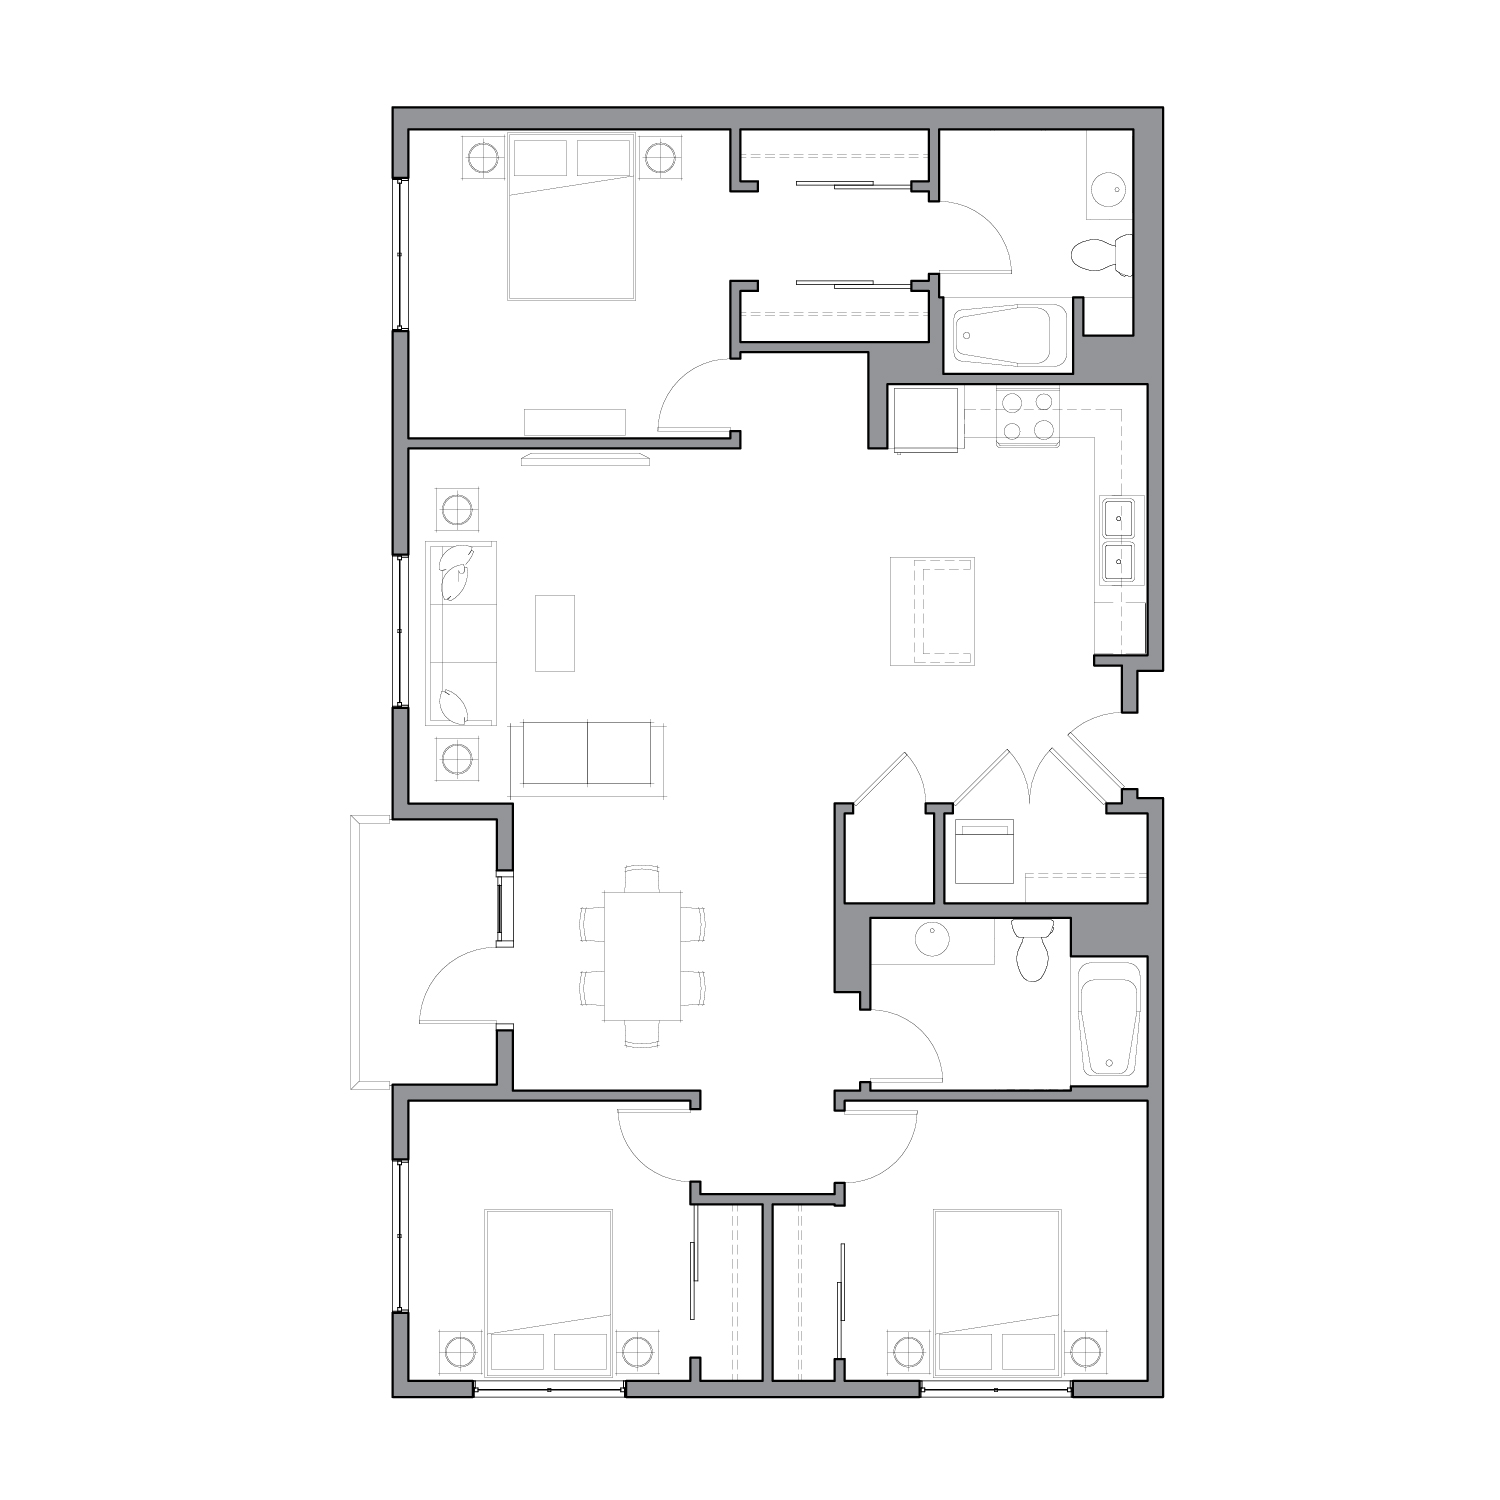 Floor plan diagram with three bedrooms, two bathrooms, an open kitchen dining and living space, and a patio